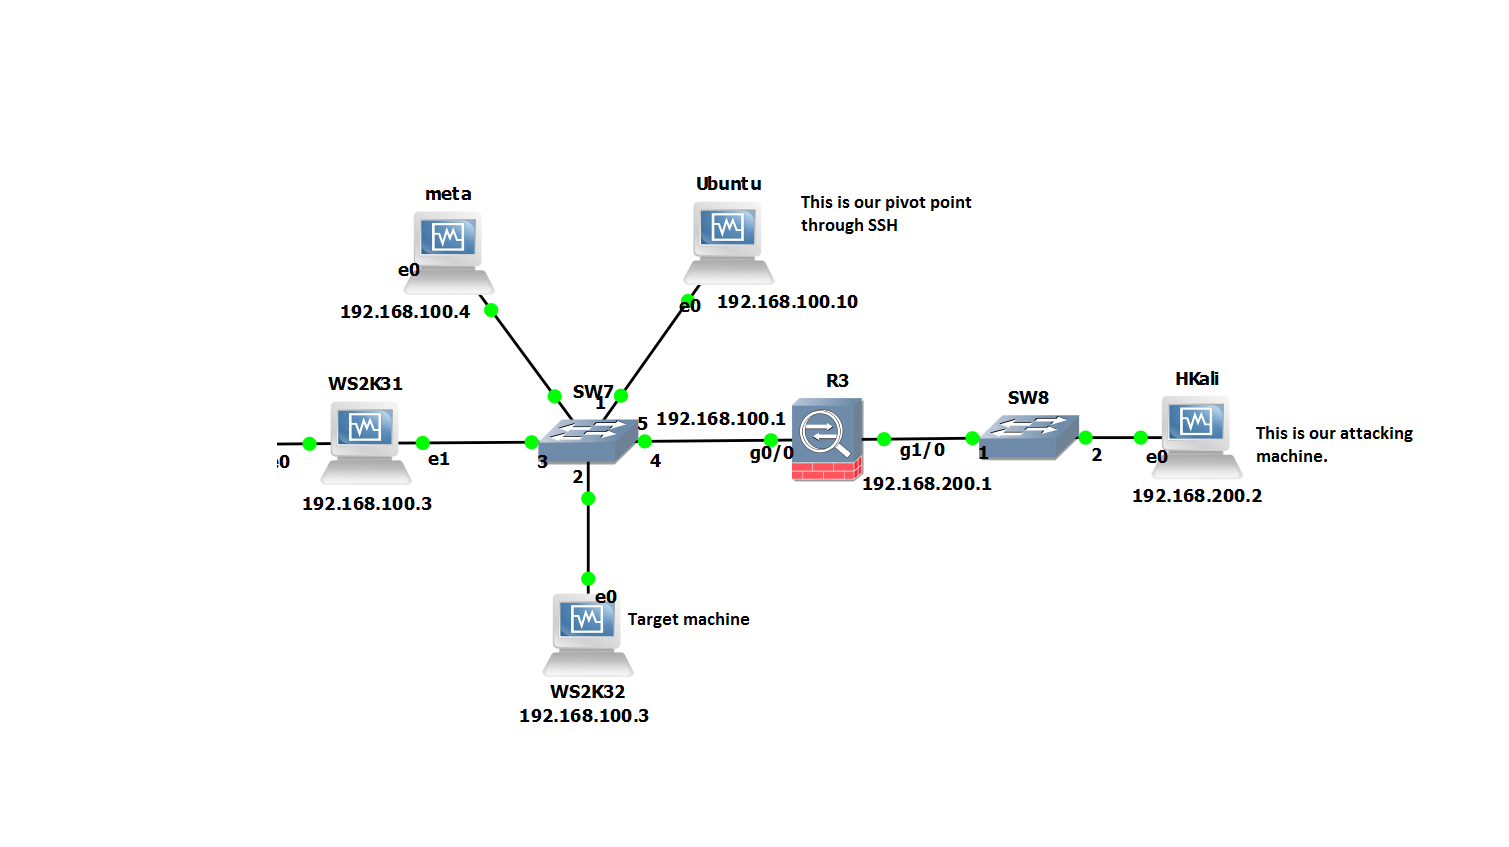 Labs Projects Archives It On The Couch Pam1 Relay Wiring Diagram Scenario A Picture Paints Thousand Words Essential Our Hkali Machine Is Outside Ubuntu Server In Internal Dmz This Going To